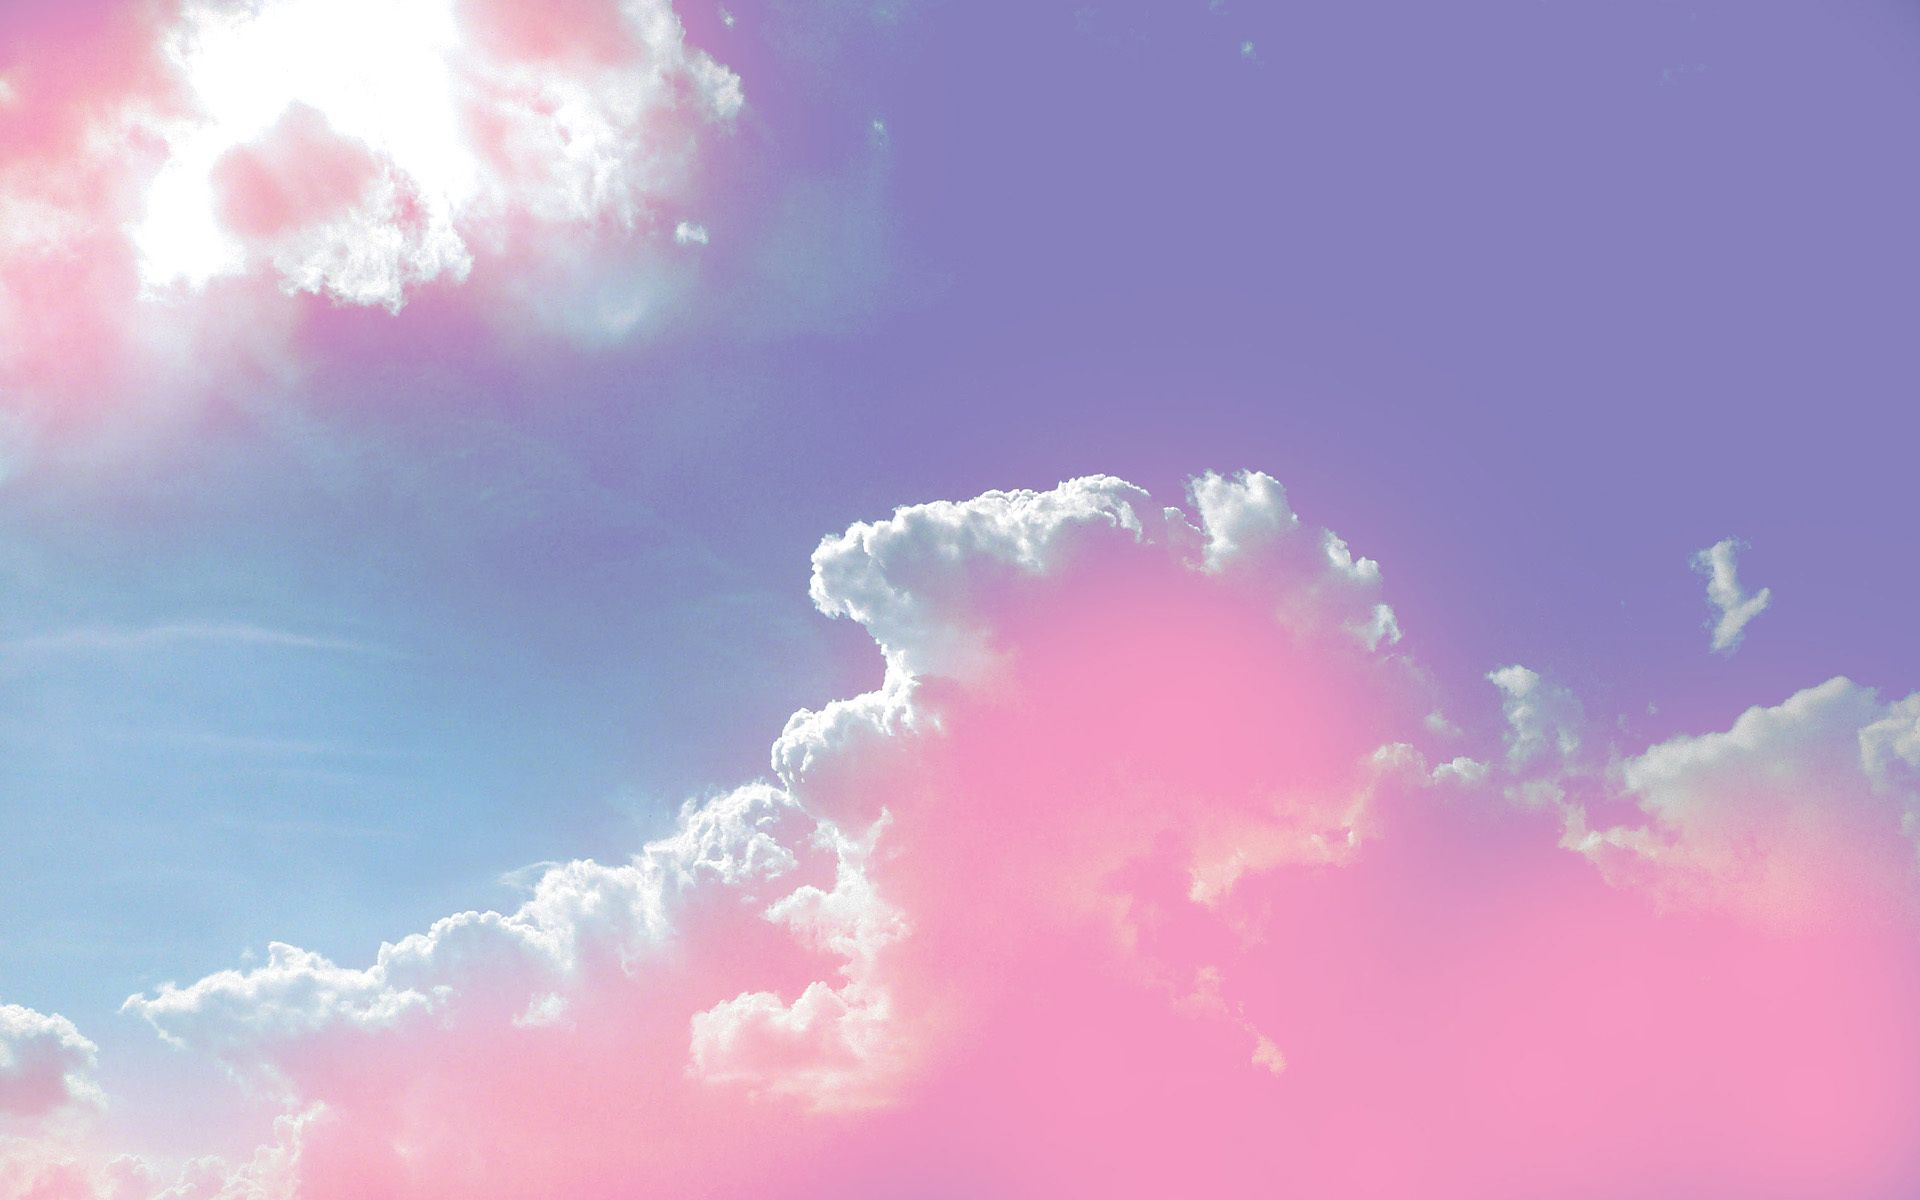 Pink And Blue Sky Background For Laptop Wallpaper Pink Sky Background 147043 Hd Wallpaper Backgrounds Download